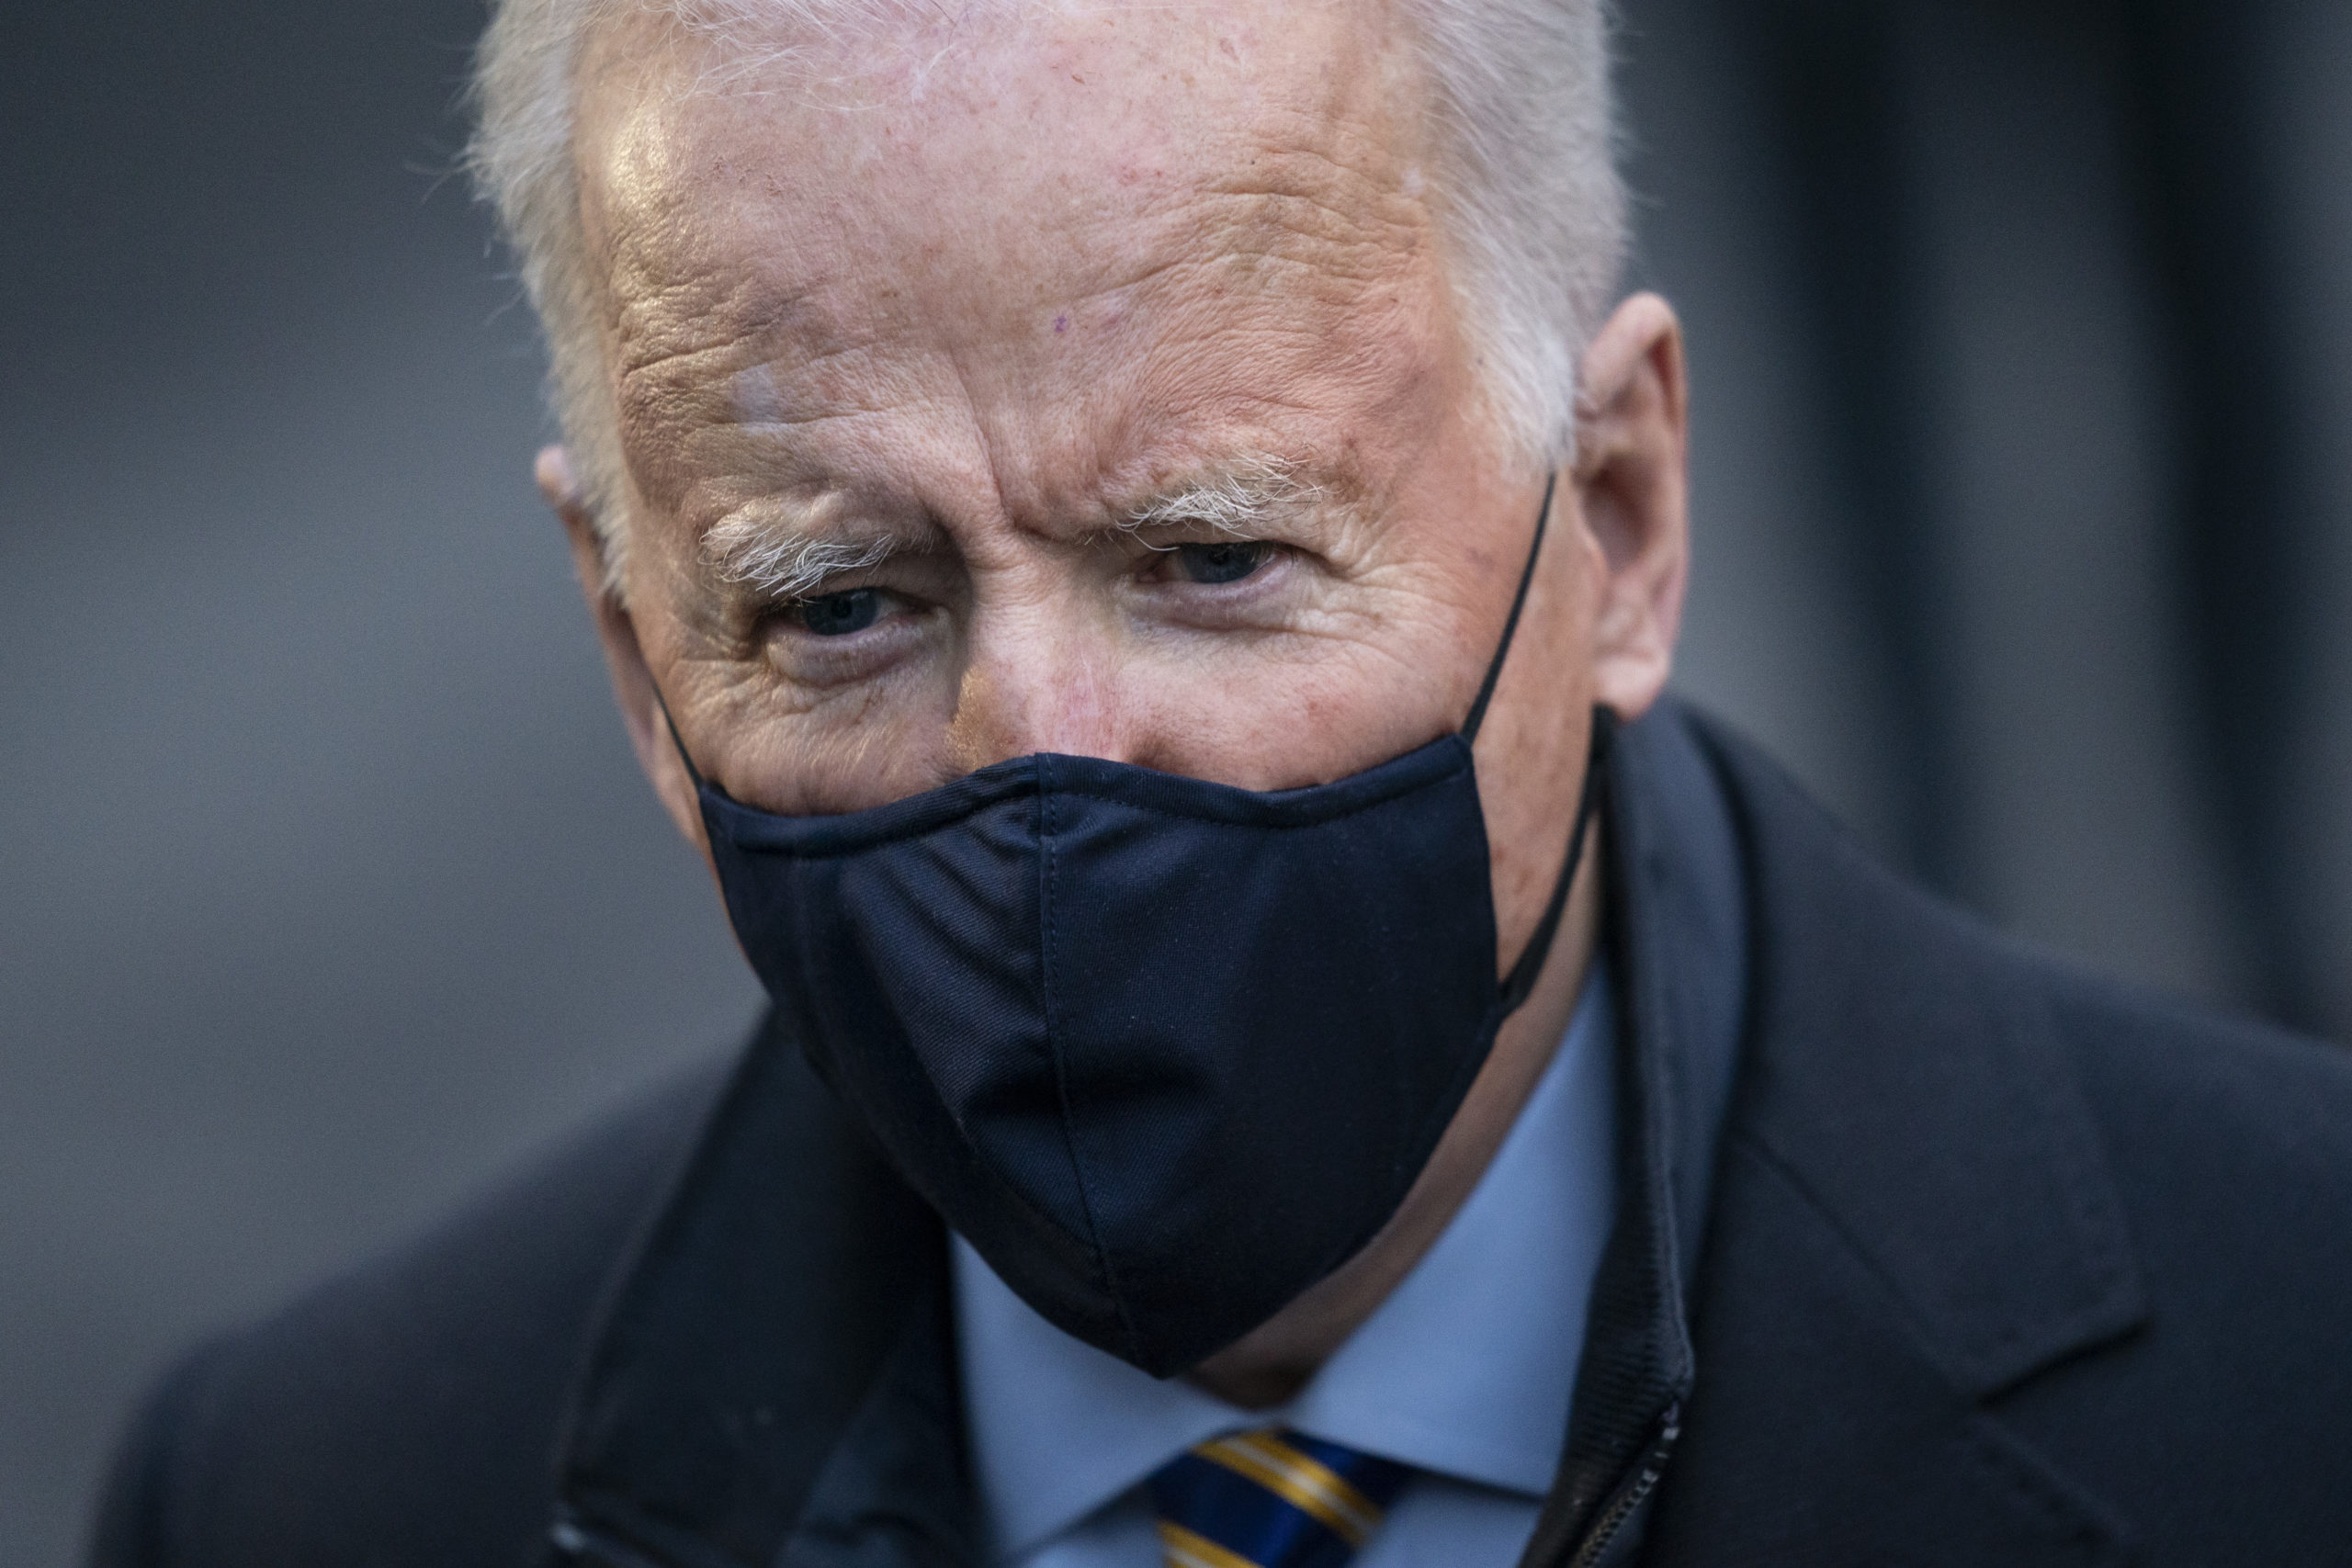 WASHINGTON, DC - FEBRUARY 16: U.S. President Joe Biden speaks briefly to reporters on his way to Marine One on the South Lawn of the White House on February 16, 2021 in Washington, DC. President Biden is traveling to Milwaukee, Wisconsin for a town hall event to discuss the coronavirus pandemic and a $1.9 trillion relief bill he is trying to pass through Congress. (Photo by Drew Angerer/Getty Images)